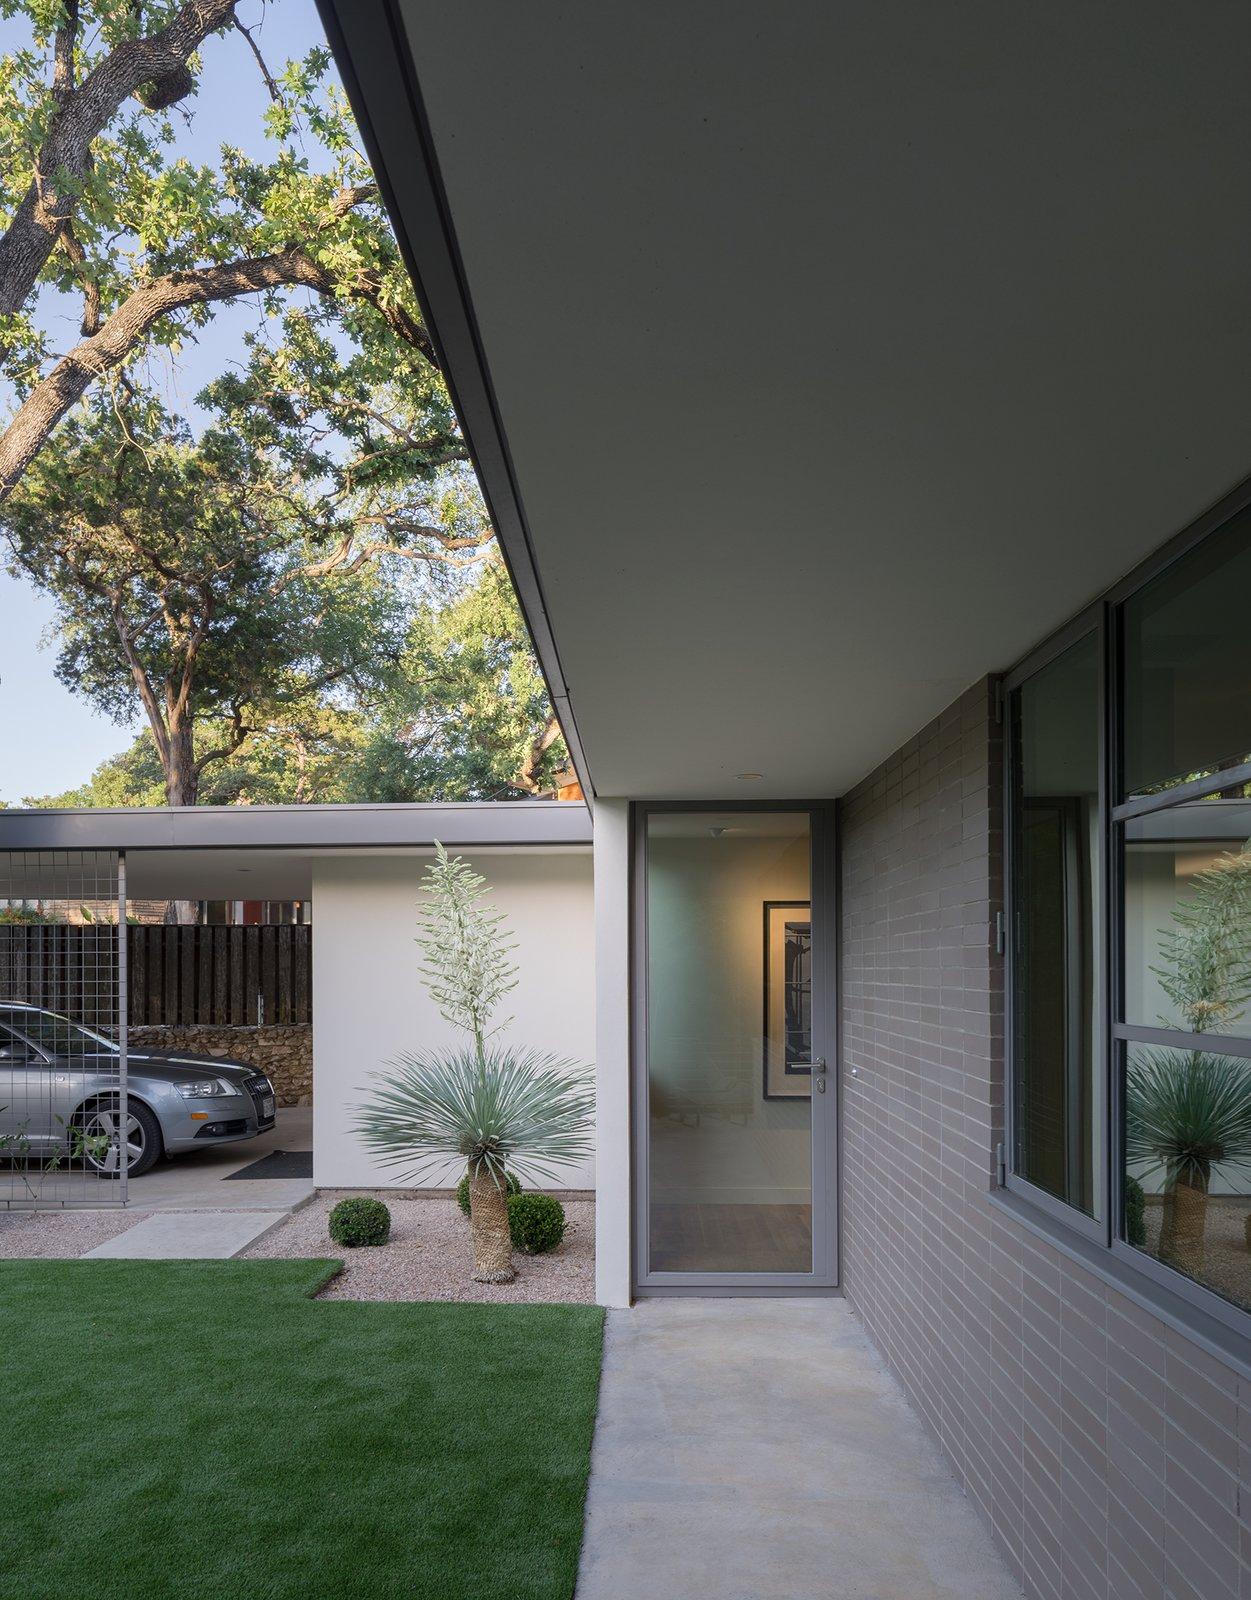 Exterior, Brick Siding Material, House Building Type, and Flat RoofLine  Inwood Place by Tim Cuppett Architects